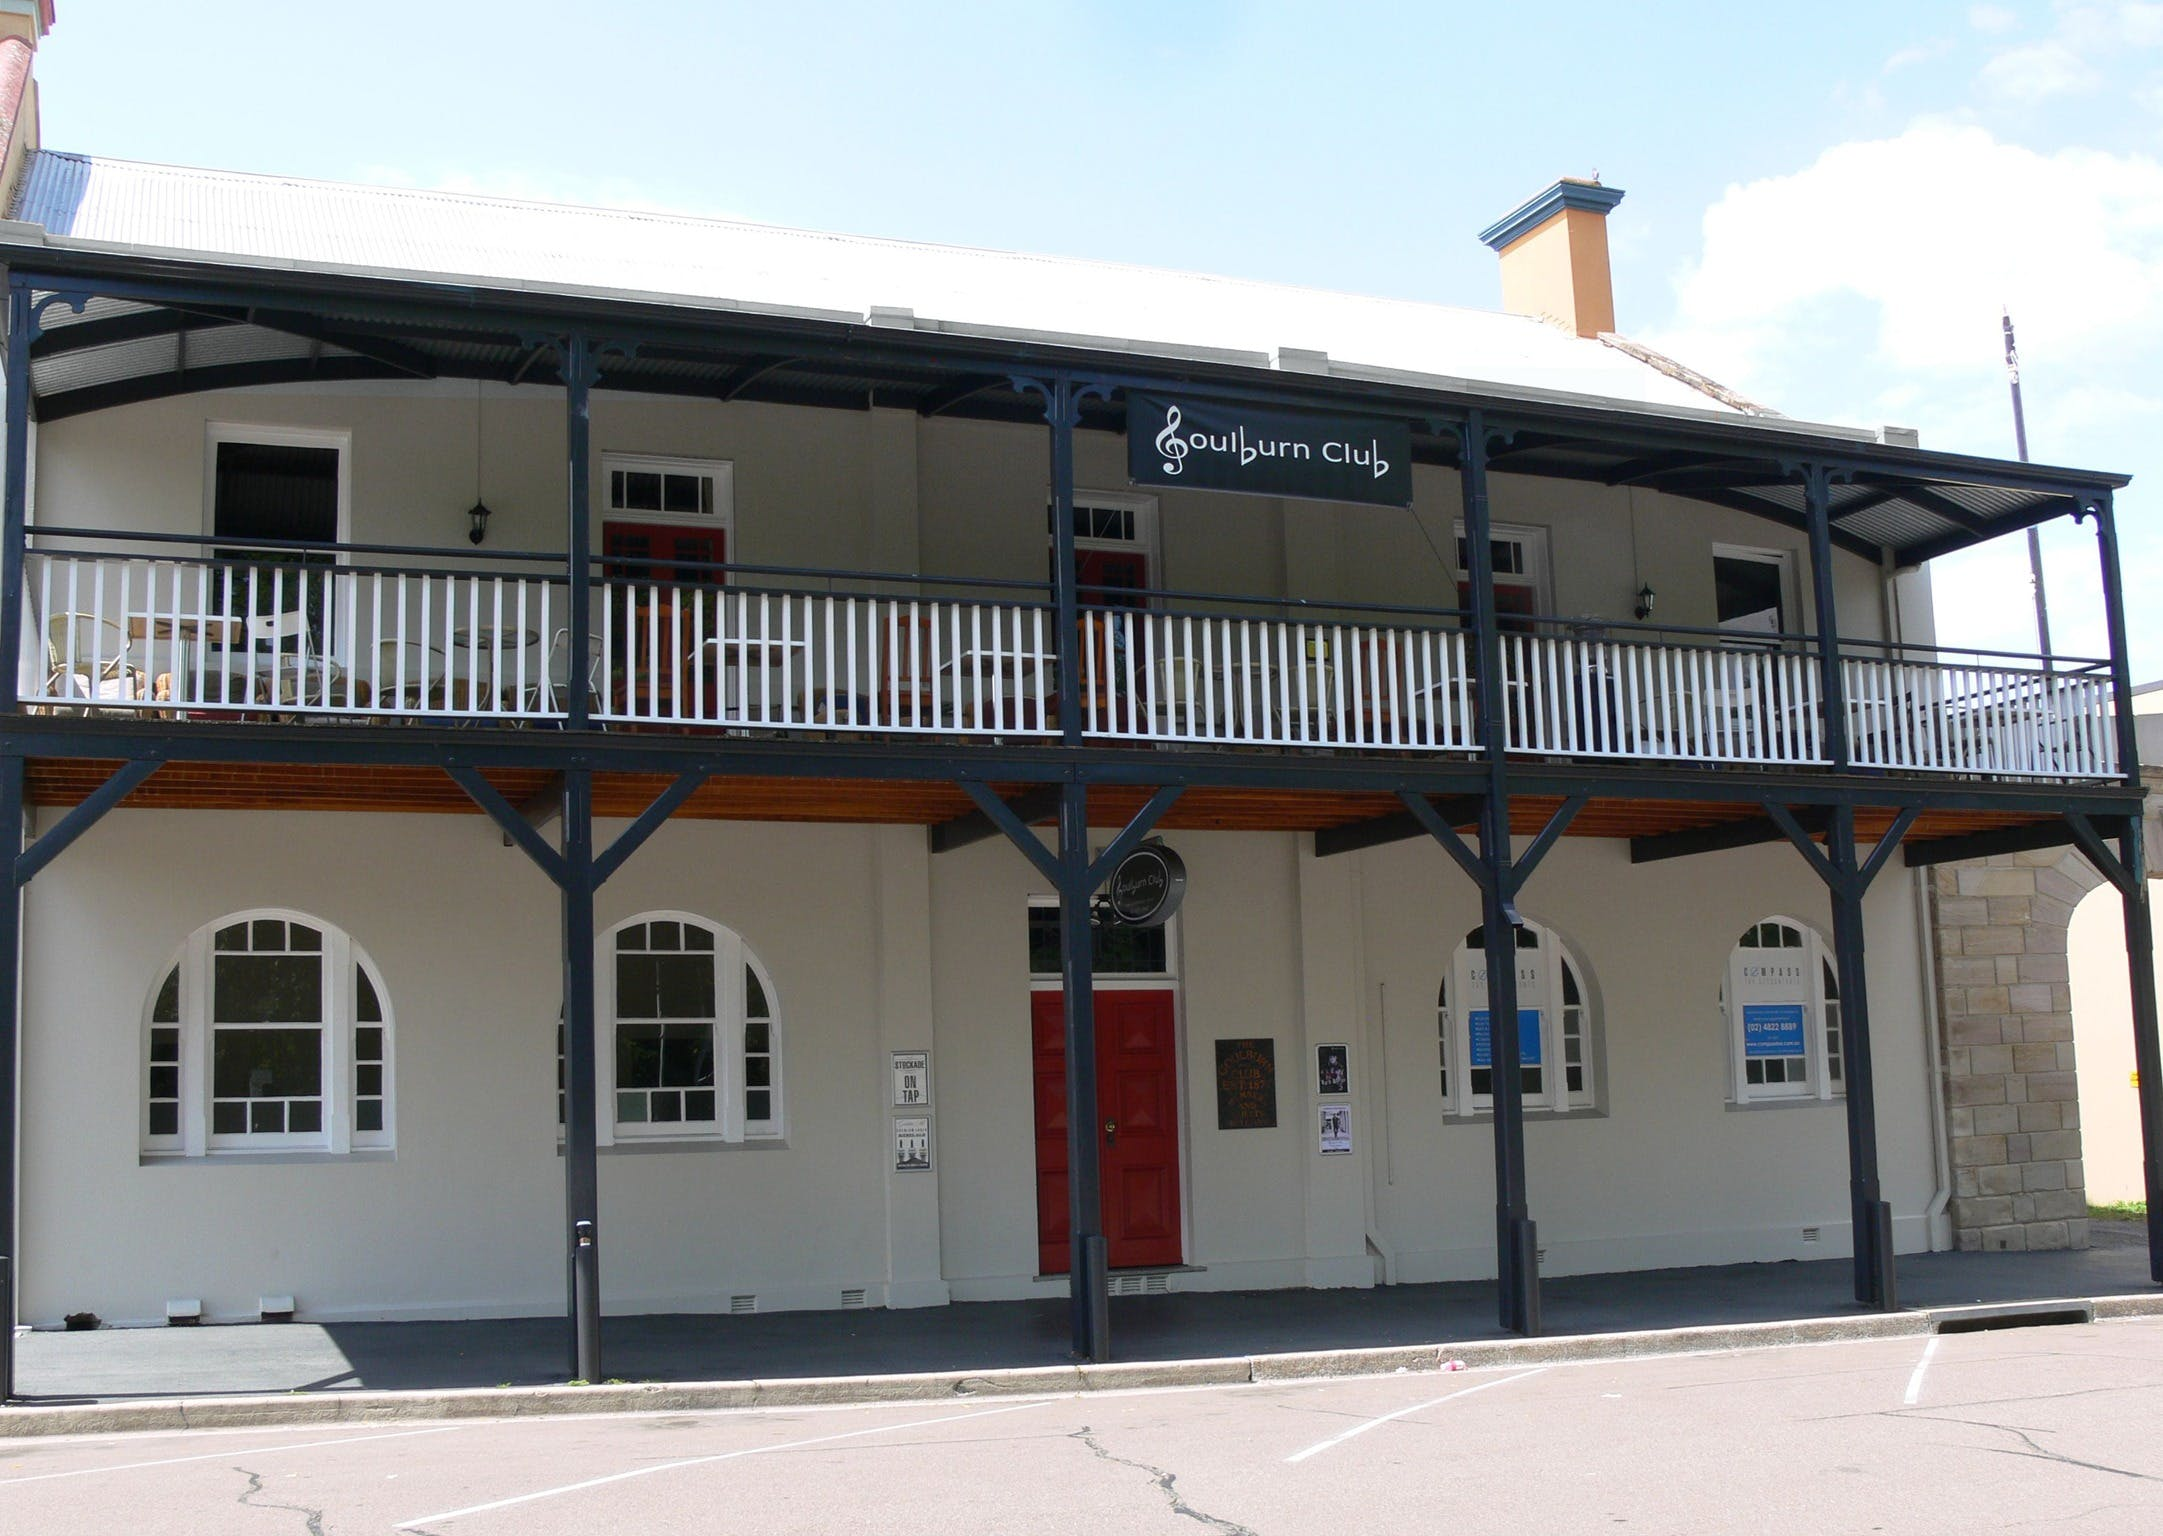 Open Mic Night at the Goulburn Club - Newcastle Accommodation